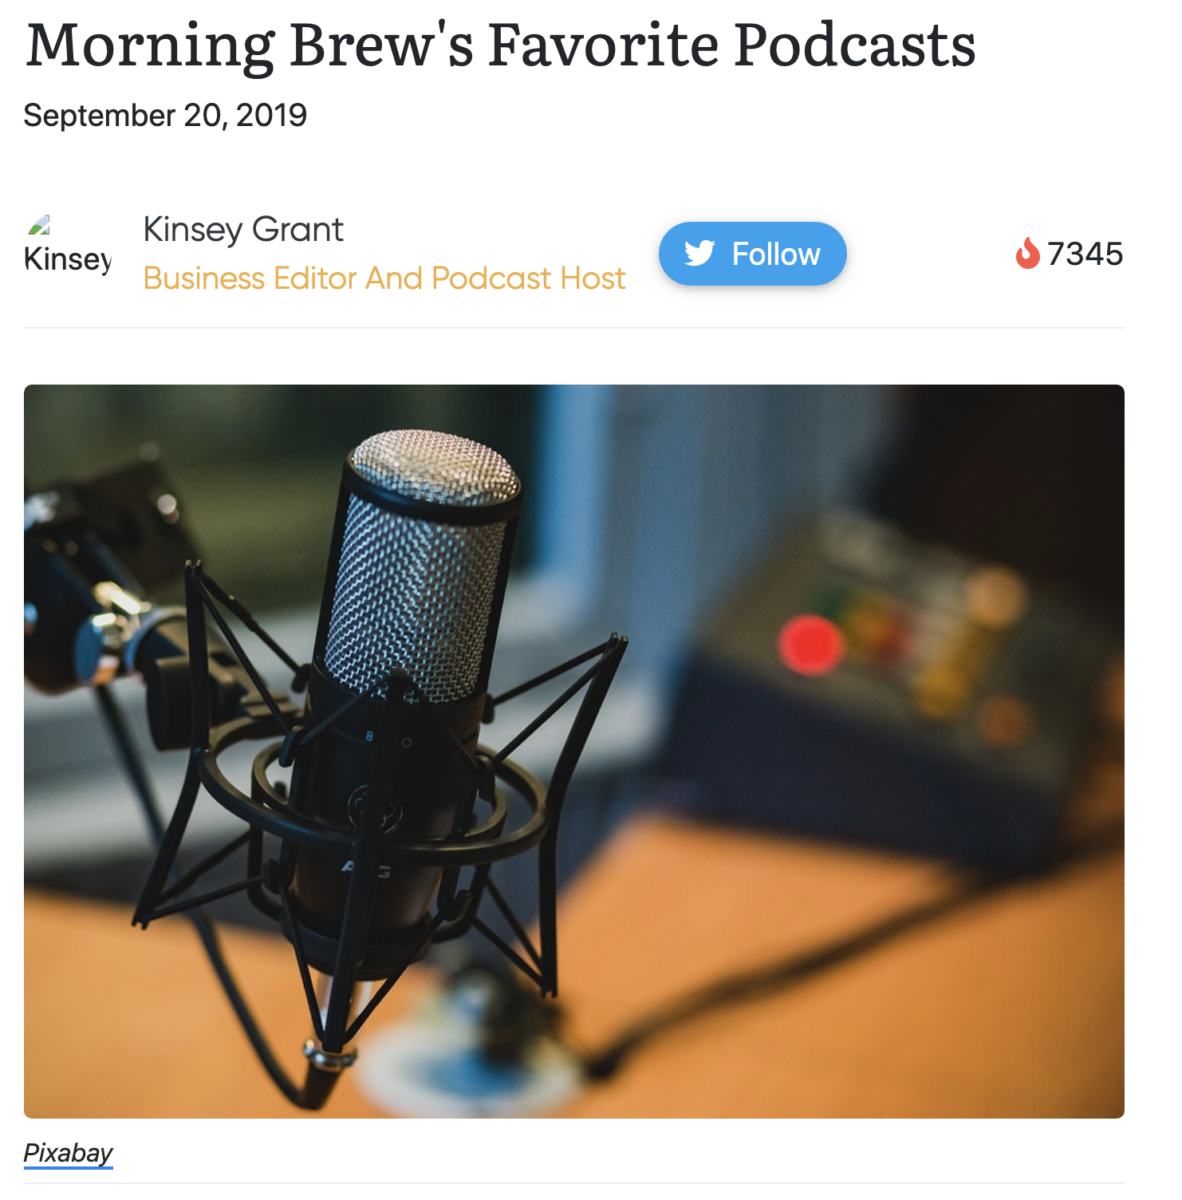 Favorite Podcasts via Morning Brew